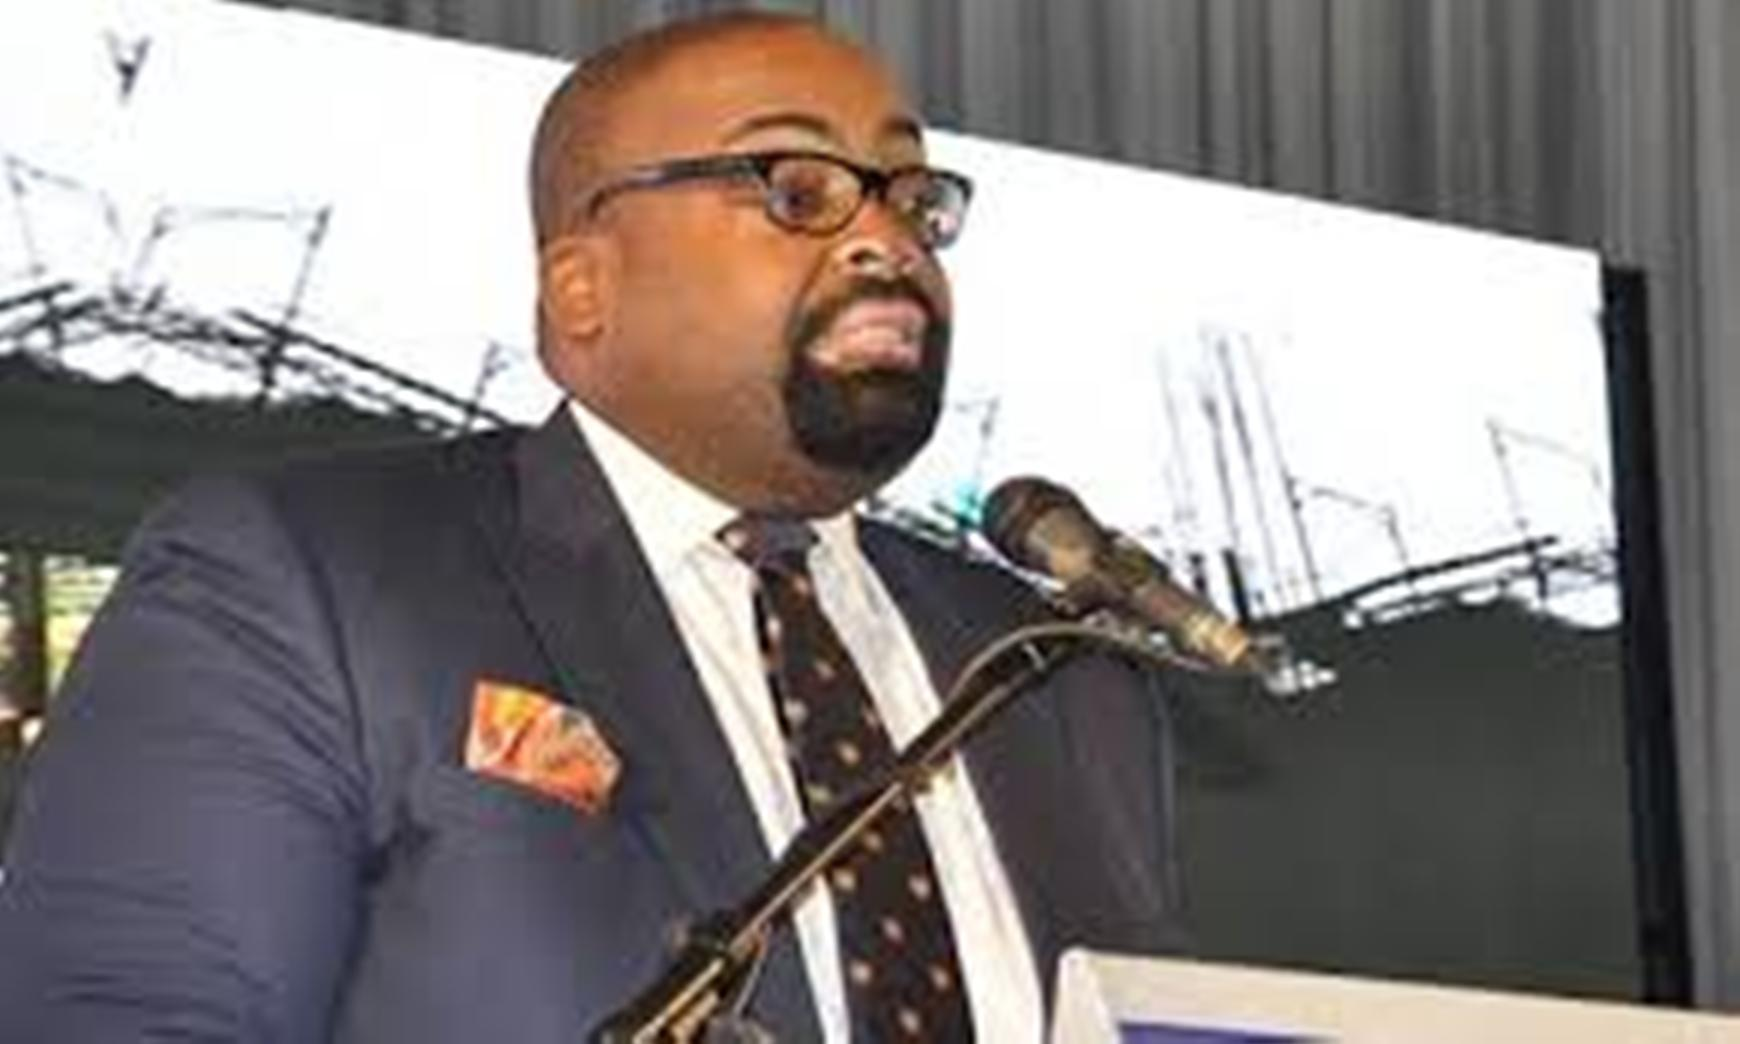 """Lawyers set agenda for new NBA president-elect, Akpata By Henry Ojelu Some lawyers have set agenda for the new Nigeria Bar Association, NBA President-elect, Olumide Akpata following his victory at the association's general election held last week. Akpata polled 9,891 votes to defeat Dr Babatunde Ajibade (SAN) and Mr Dele Adesina (SAN) who scored 4,328 and 3,982 votes respectively in the election which was conducted electronically. Lawyers who spoke to Vanguard expressed their views on what the Akpata led administration should do to refocus the association. The bar must be united- Adegboruwa, SAN On his expectation from the new executives, Ebun-Olu Adegboruwa, SAN emphasized that Akpata's administration must strive to unite the association. He said, """"The NBA Exco has to set to work to unite the Bar across all sectors of the legal profession, between advocates, transactional lawyers, professionals in government departments, solicitors and also bridge the gap between senior and junior lawyers. """"This should then be followed with cooperation with the government in the fight against corruption, especially within the judiciary. The issue of proper ethics should then be looked into as a means of instilling discipline in the practice of law. """"Above all, the voice of NBA must be heard on all occasions against all forms of injustice, arbitrariness, impunity and executive lawlessness."""" Raise bar's influence in resisting tyranny, abuse---Otteh Executive Director, Access to Justice, Joseph Otteh said Mr. Akpata has daunting challenges before him including raising the bar's influence in resisting tyranny, abuse and other forms of injustice. He said, """"It is our hope that he will refurbish and rejuvenate the Bar's role in shaping how justice is delivered in Nigeria as well as rebuild confidence in Nigeria's justice institutions. Today, public confidence in justice institutions is possibly at an all-time low and references to the stature of Nigeria's justice institutions is unflatter"""